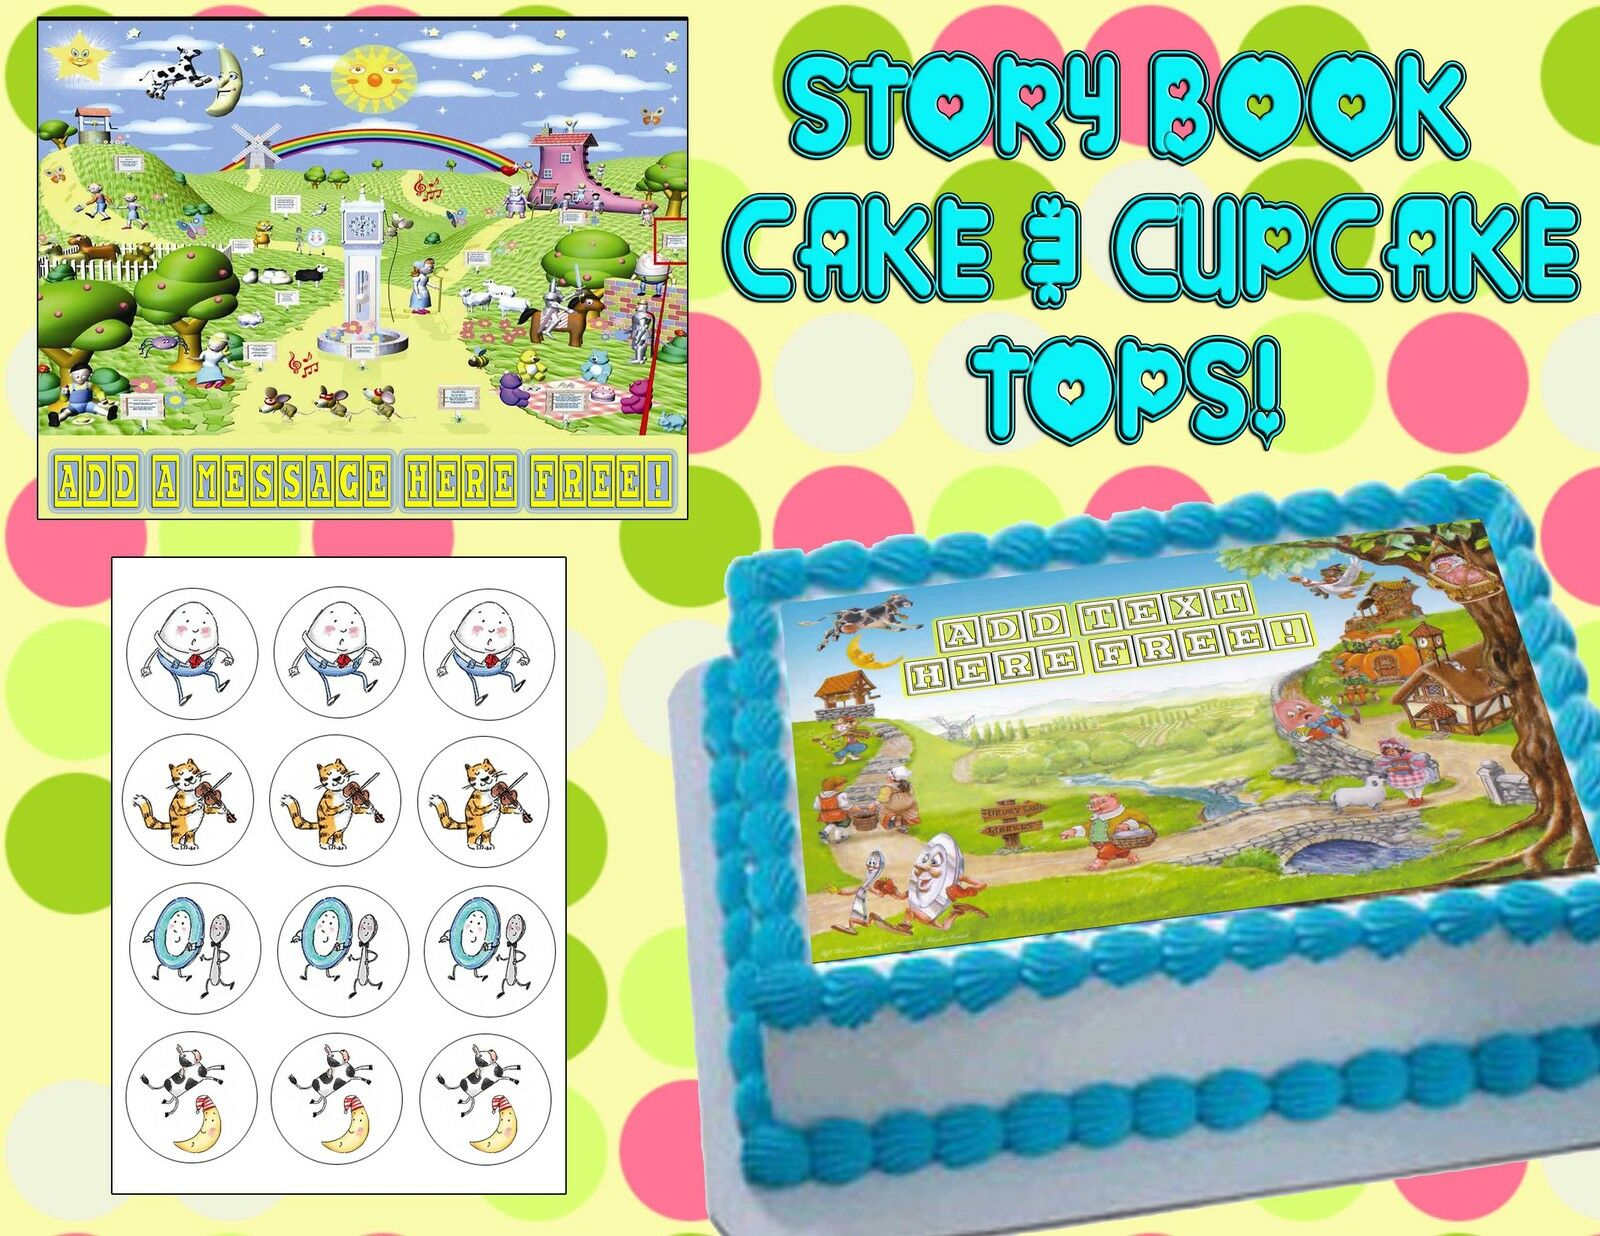 Nursery Rhyme Edible Cake Topper Cupcakes Birthday Baby Shower Tops Story Book